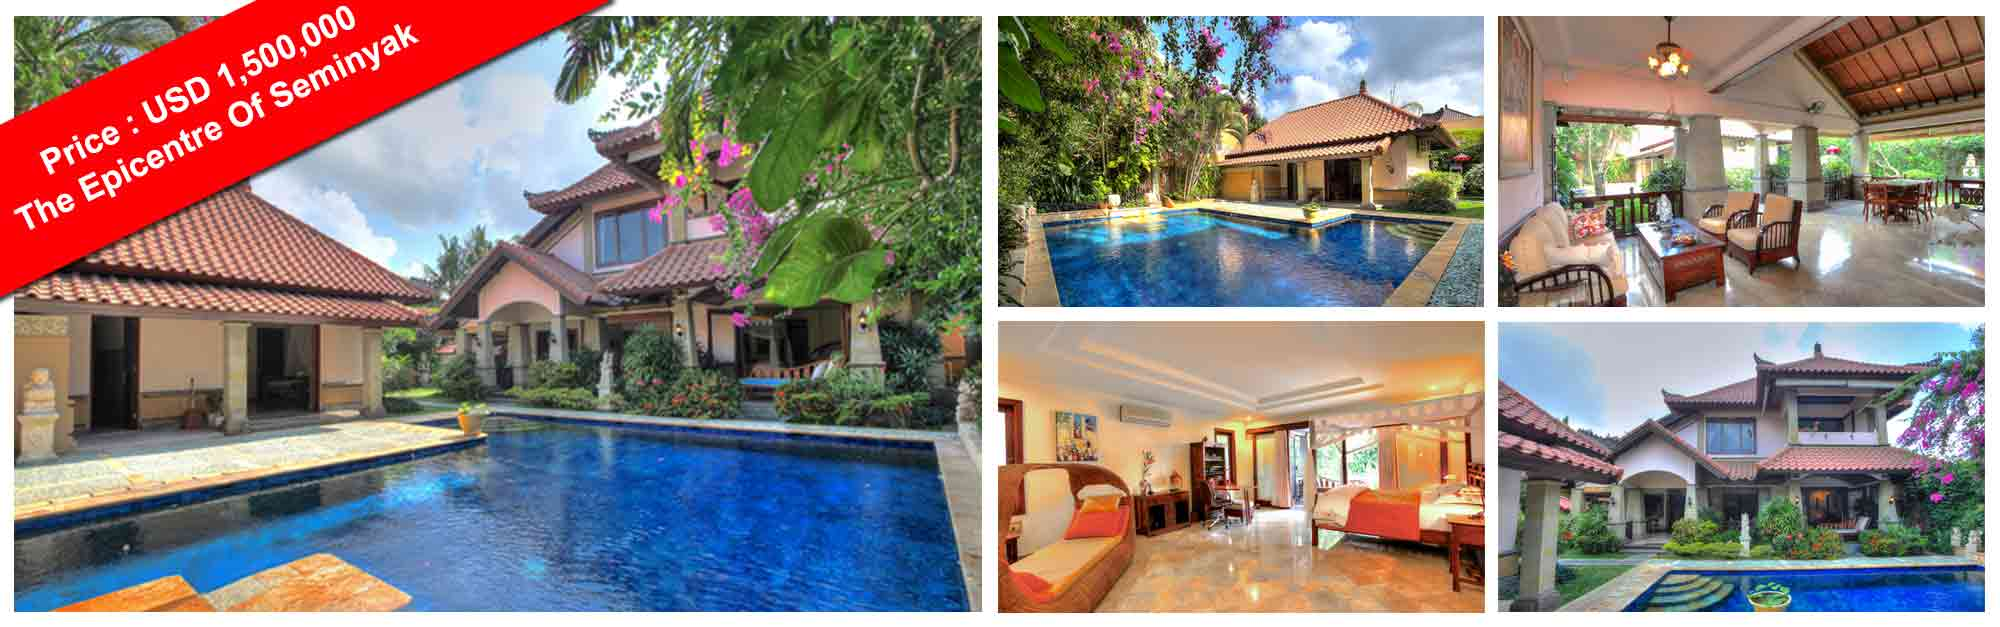 Homes Listings In Bali